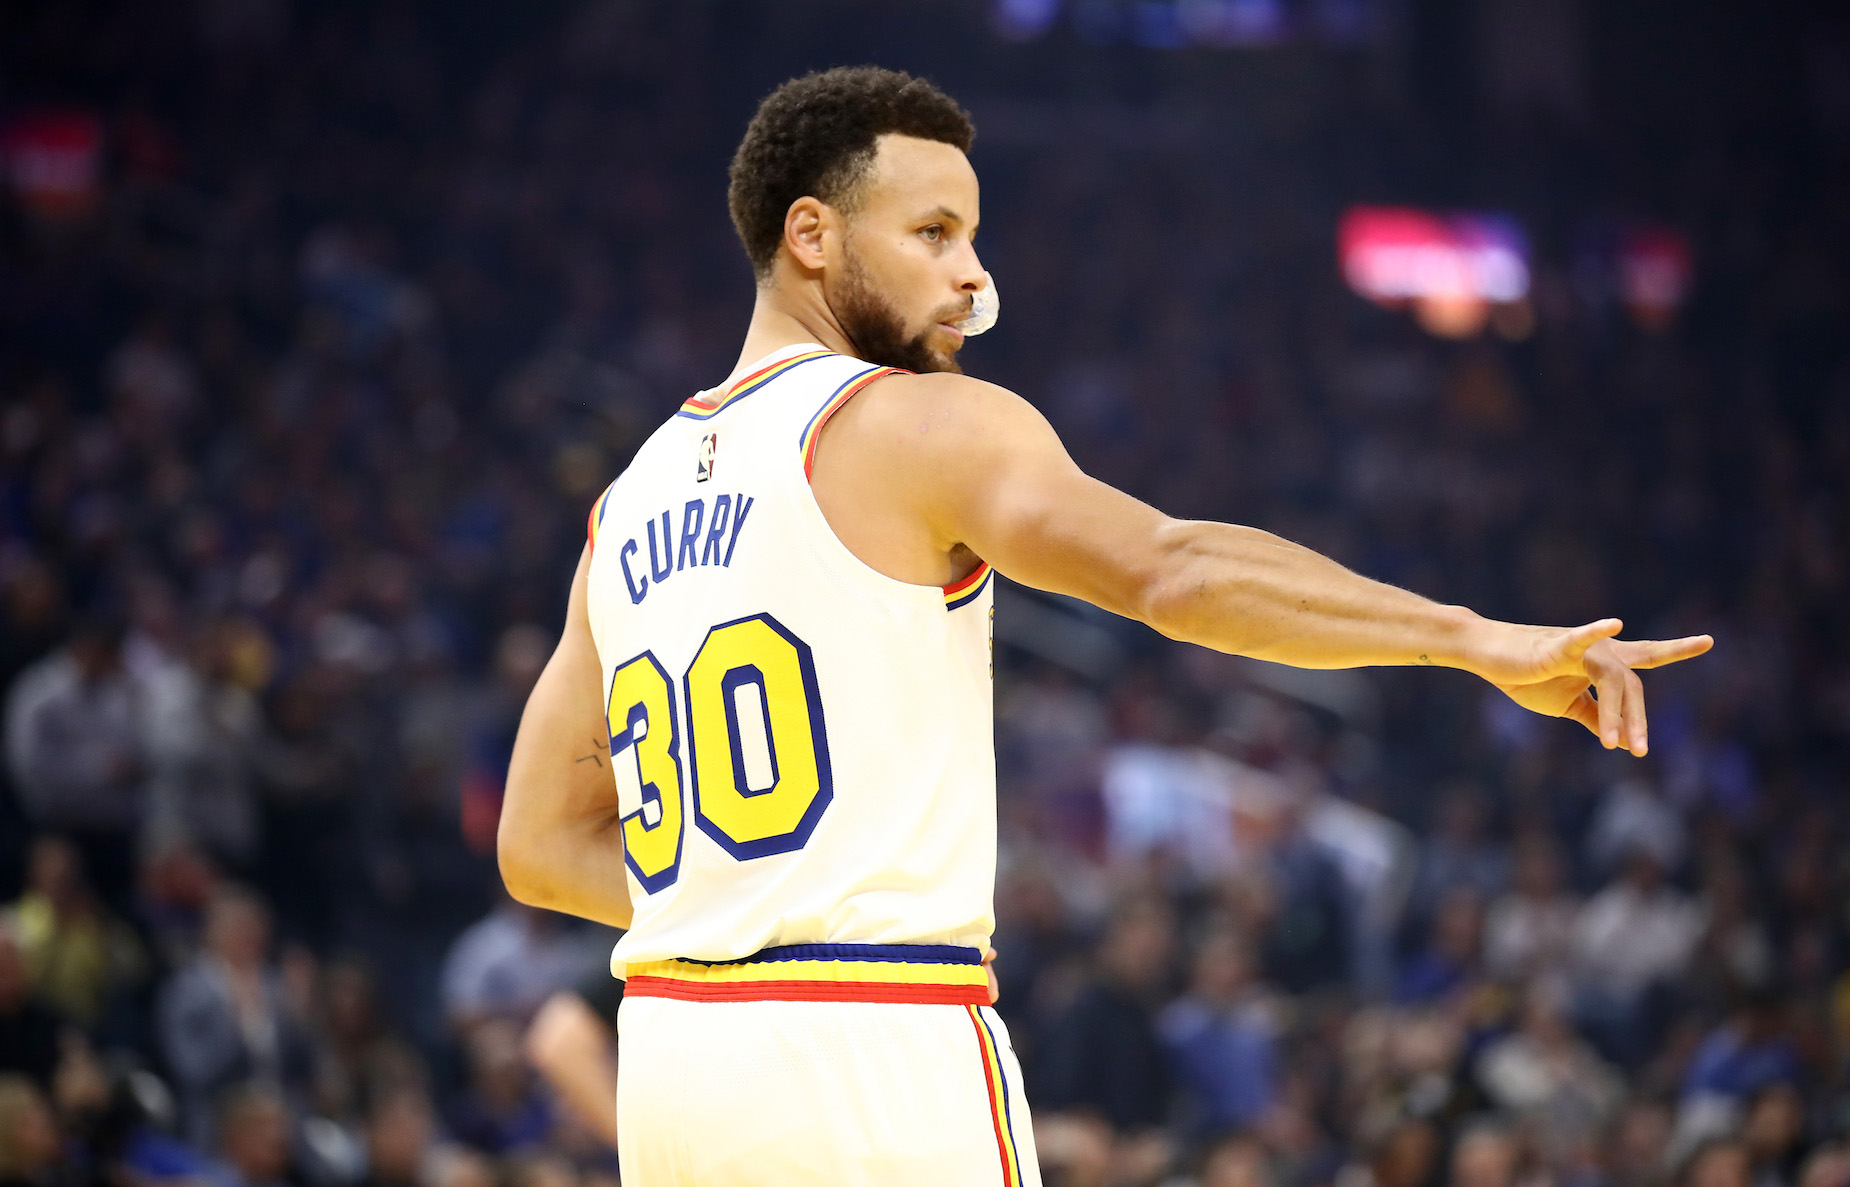 The Golden State Warriors recently got some draft advice from Steph Curry.